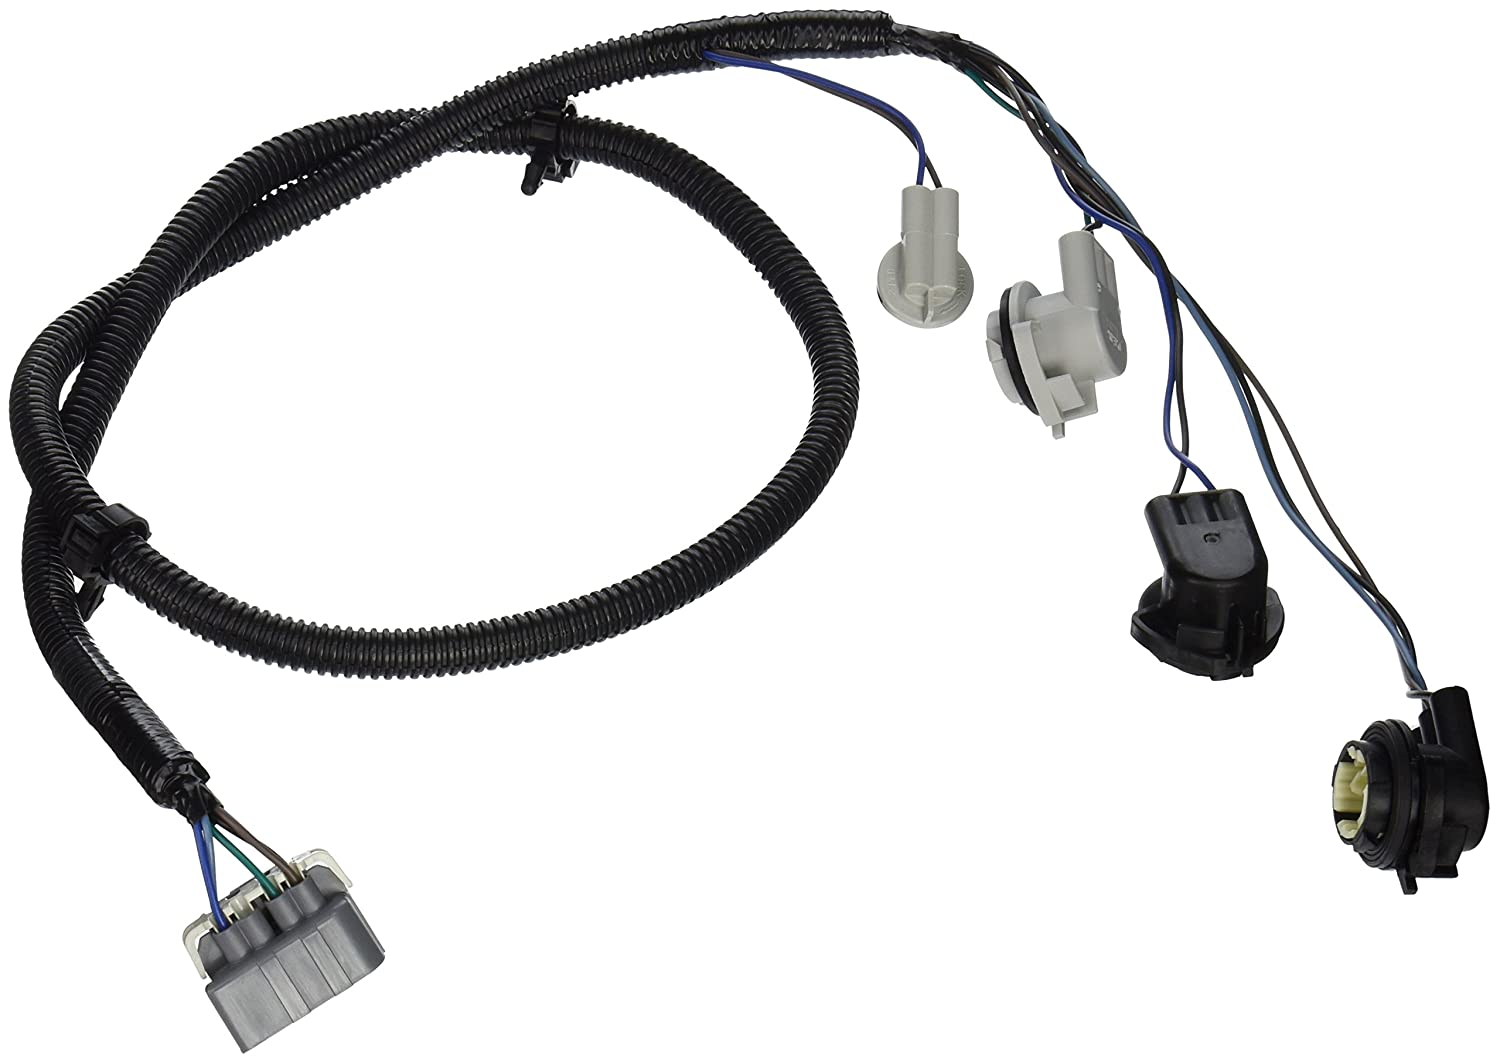 Genuine Gm 16531401 Tail Lamp Wiring Harness Automotive Saturn Sl2 Ac Diagram Free Picture